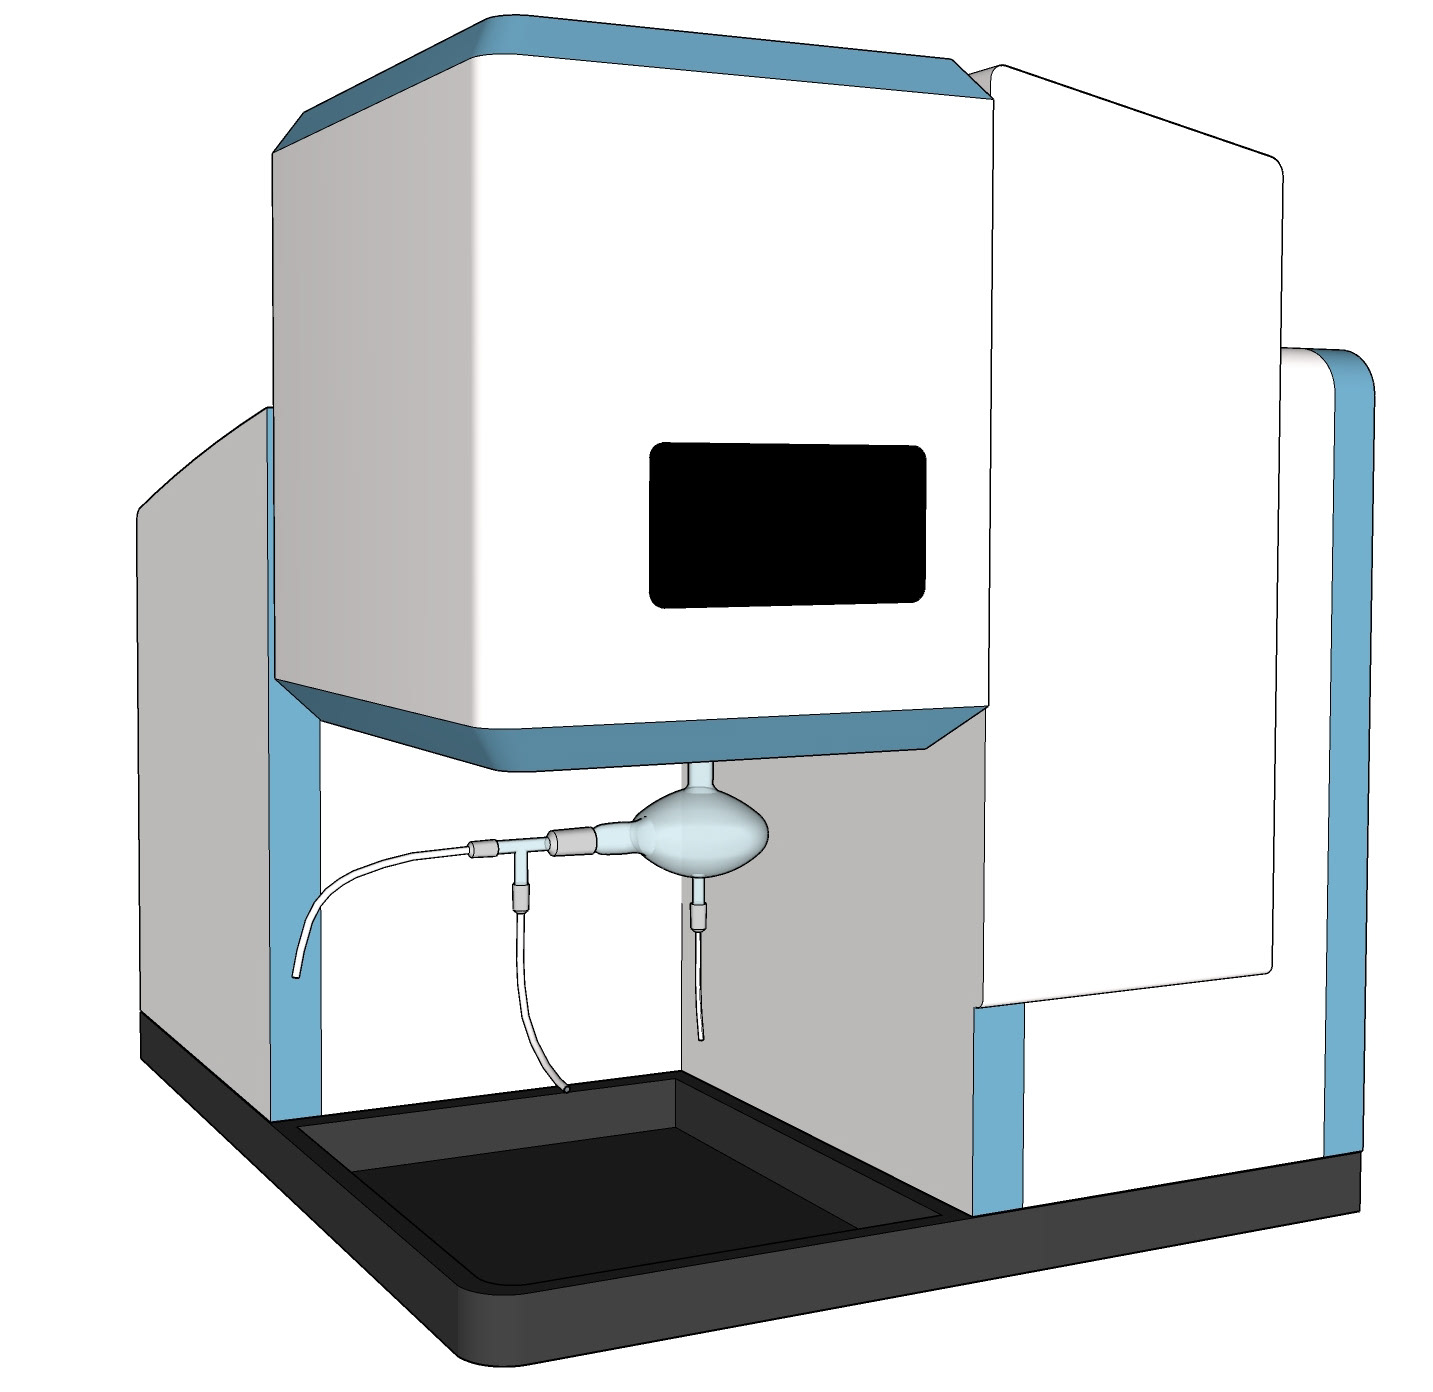 Representation of an Inductively Coupled Plasma Optical Emission Spectroscopy (ICP-OES) instrument